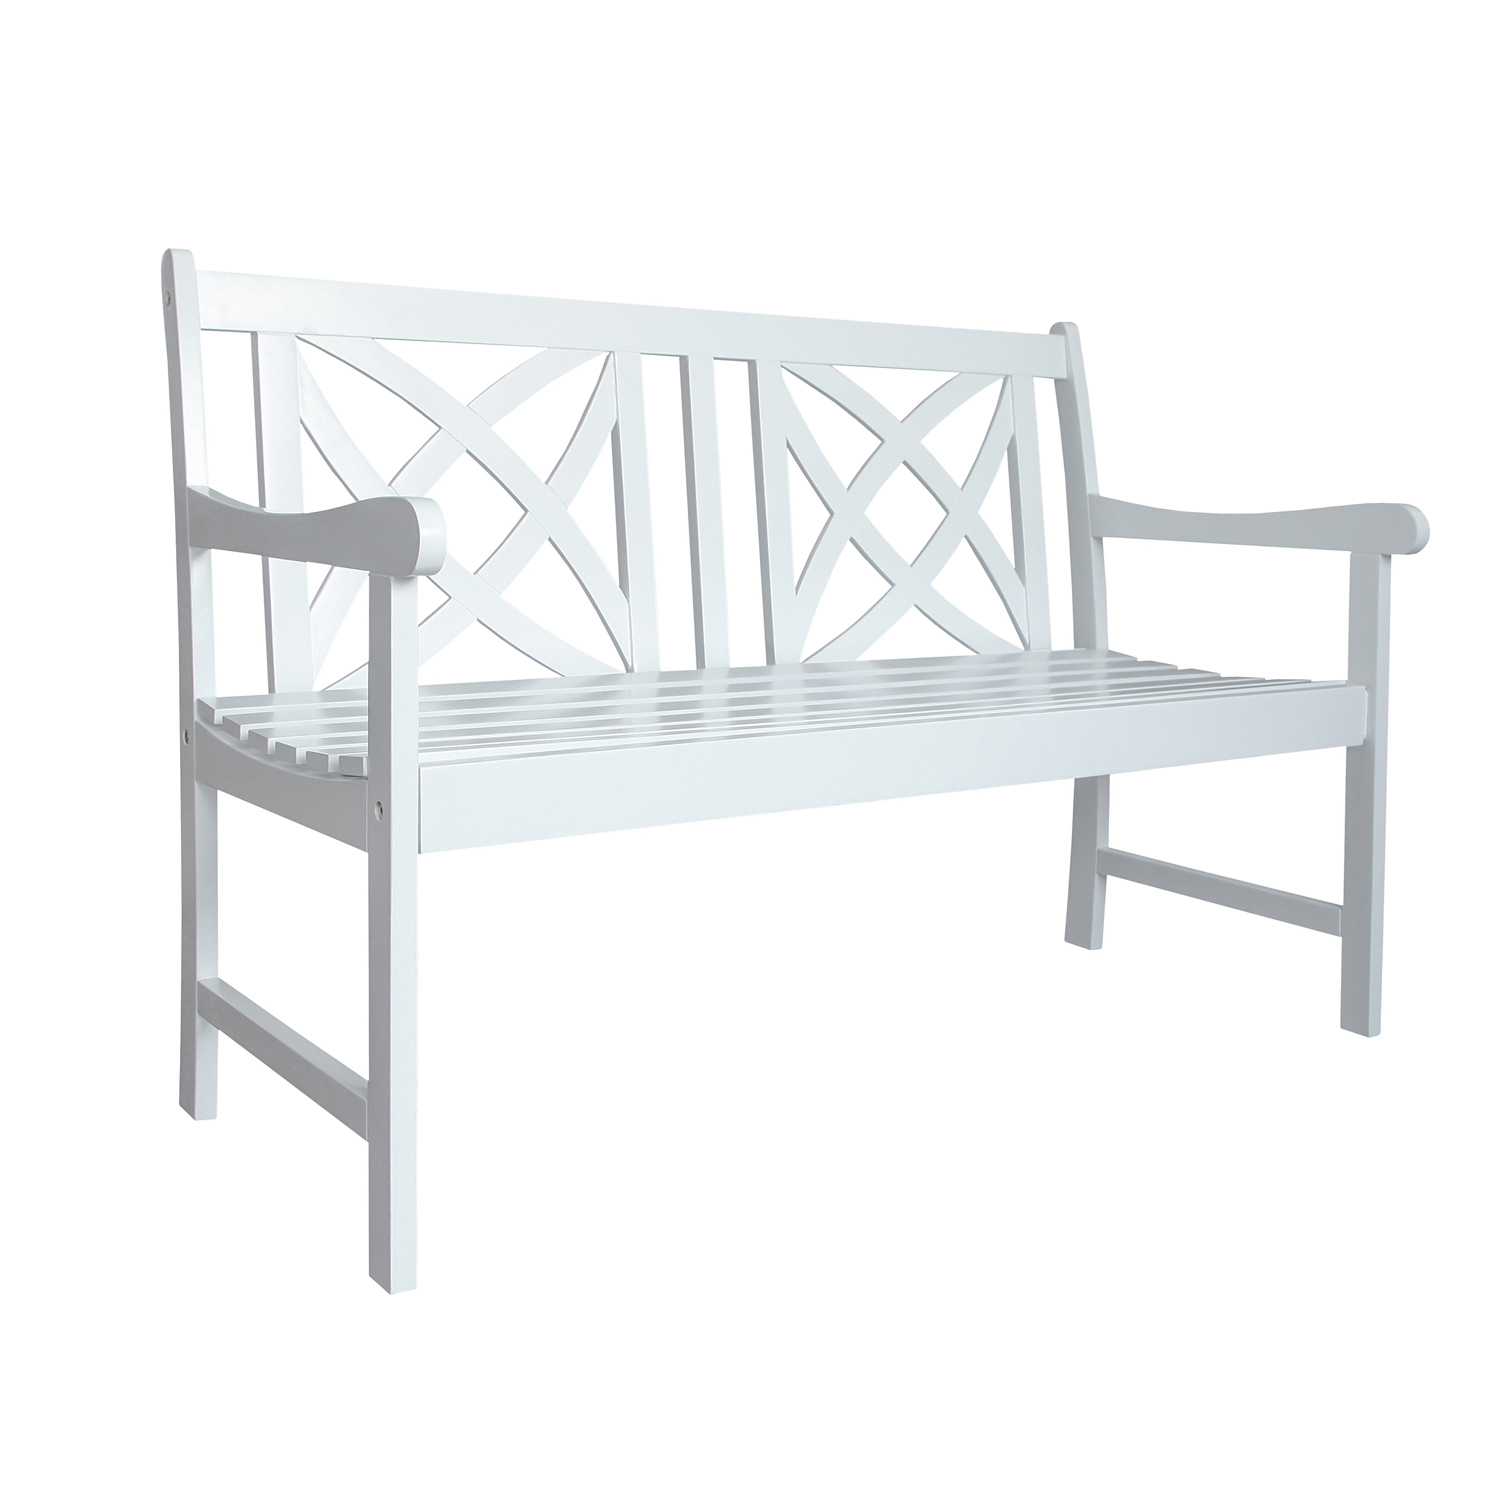 4' White Flower Pattern Back Wood Garden Bench